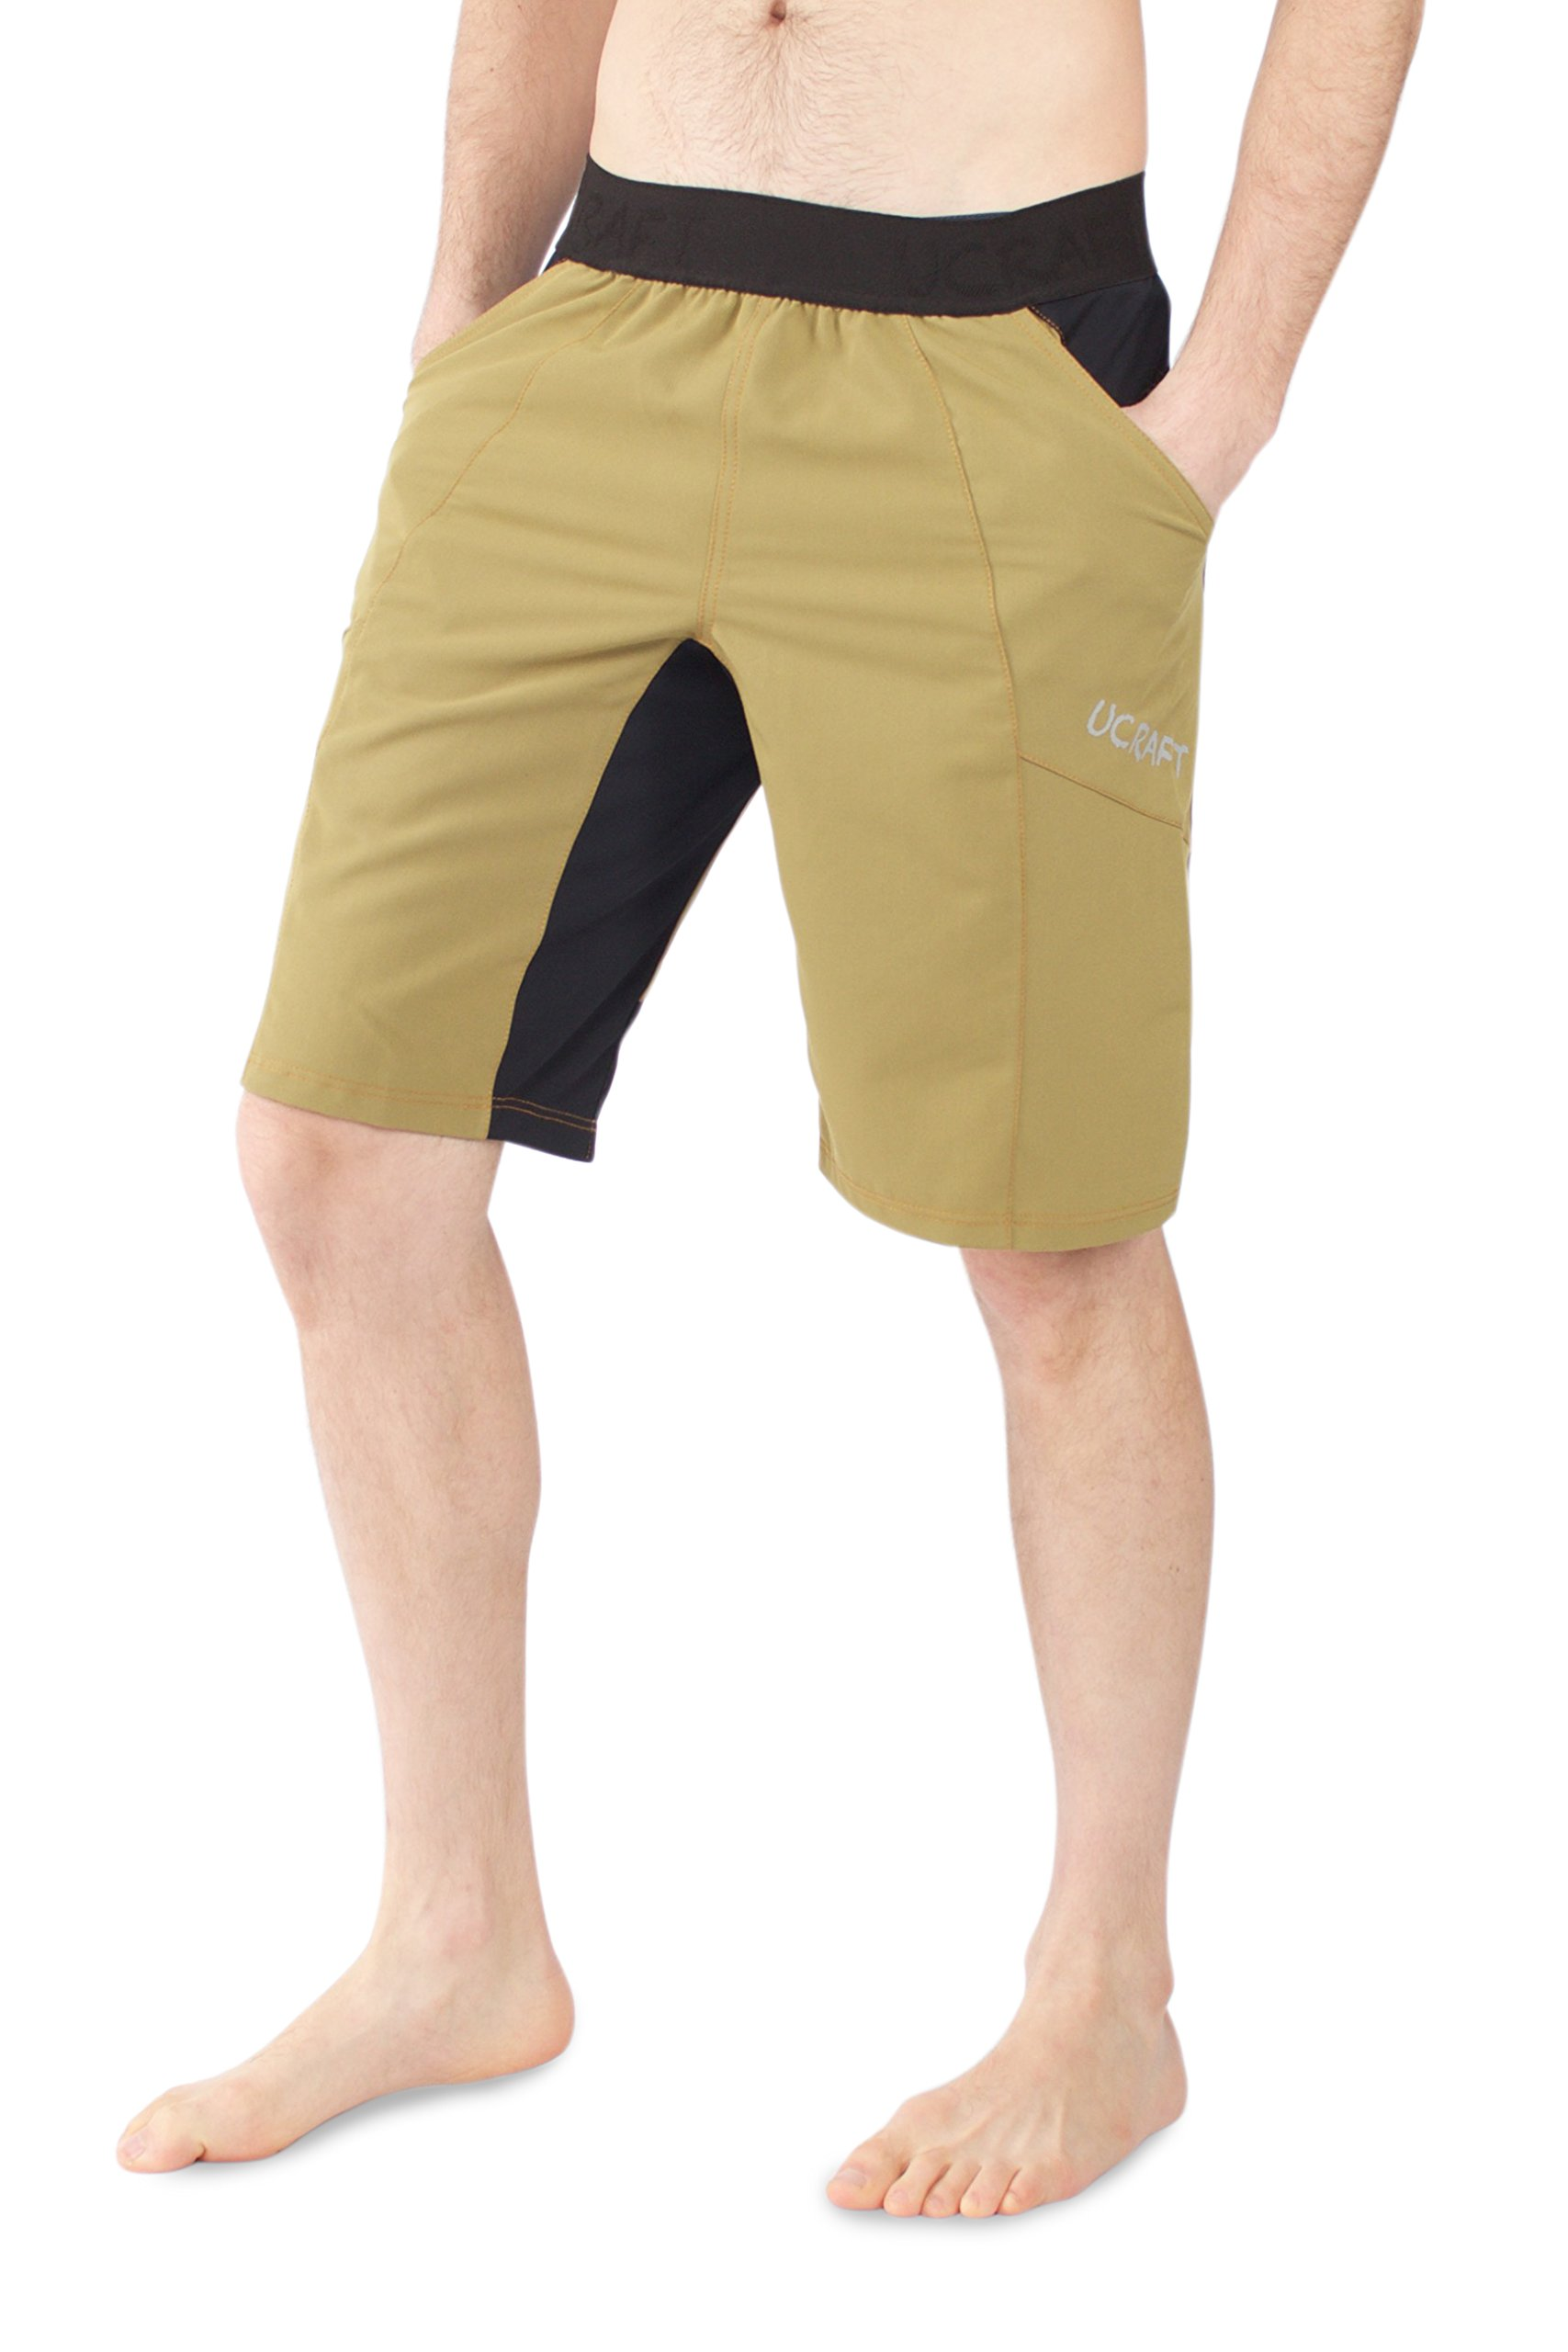 Ucraft Climbing Anti-Gravity Shorts. Stretchy, Lightweight and Breathable Multisport Shorts. (Mustard, L) by Ucraft